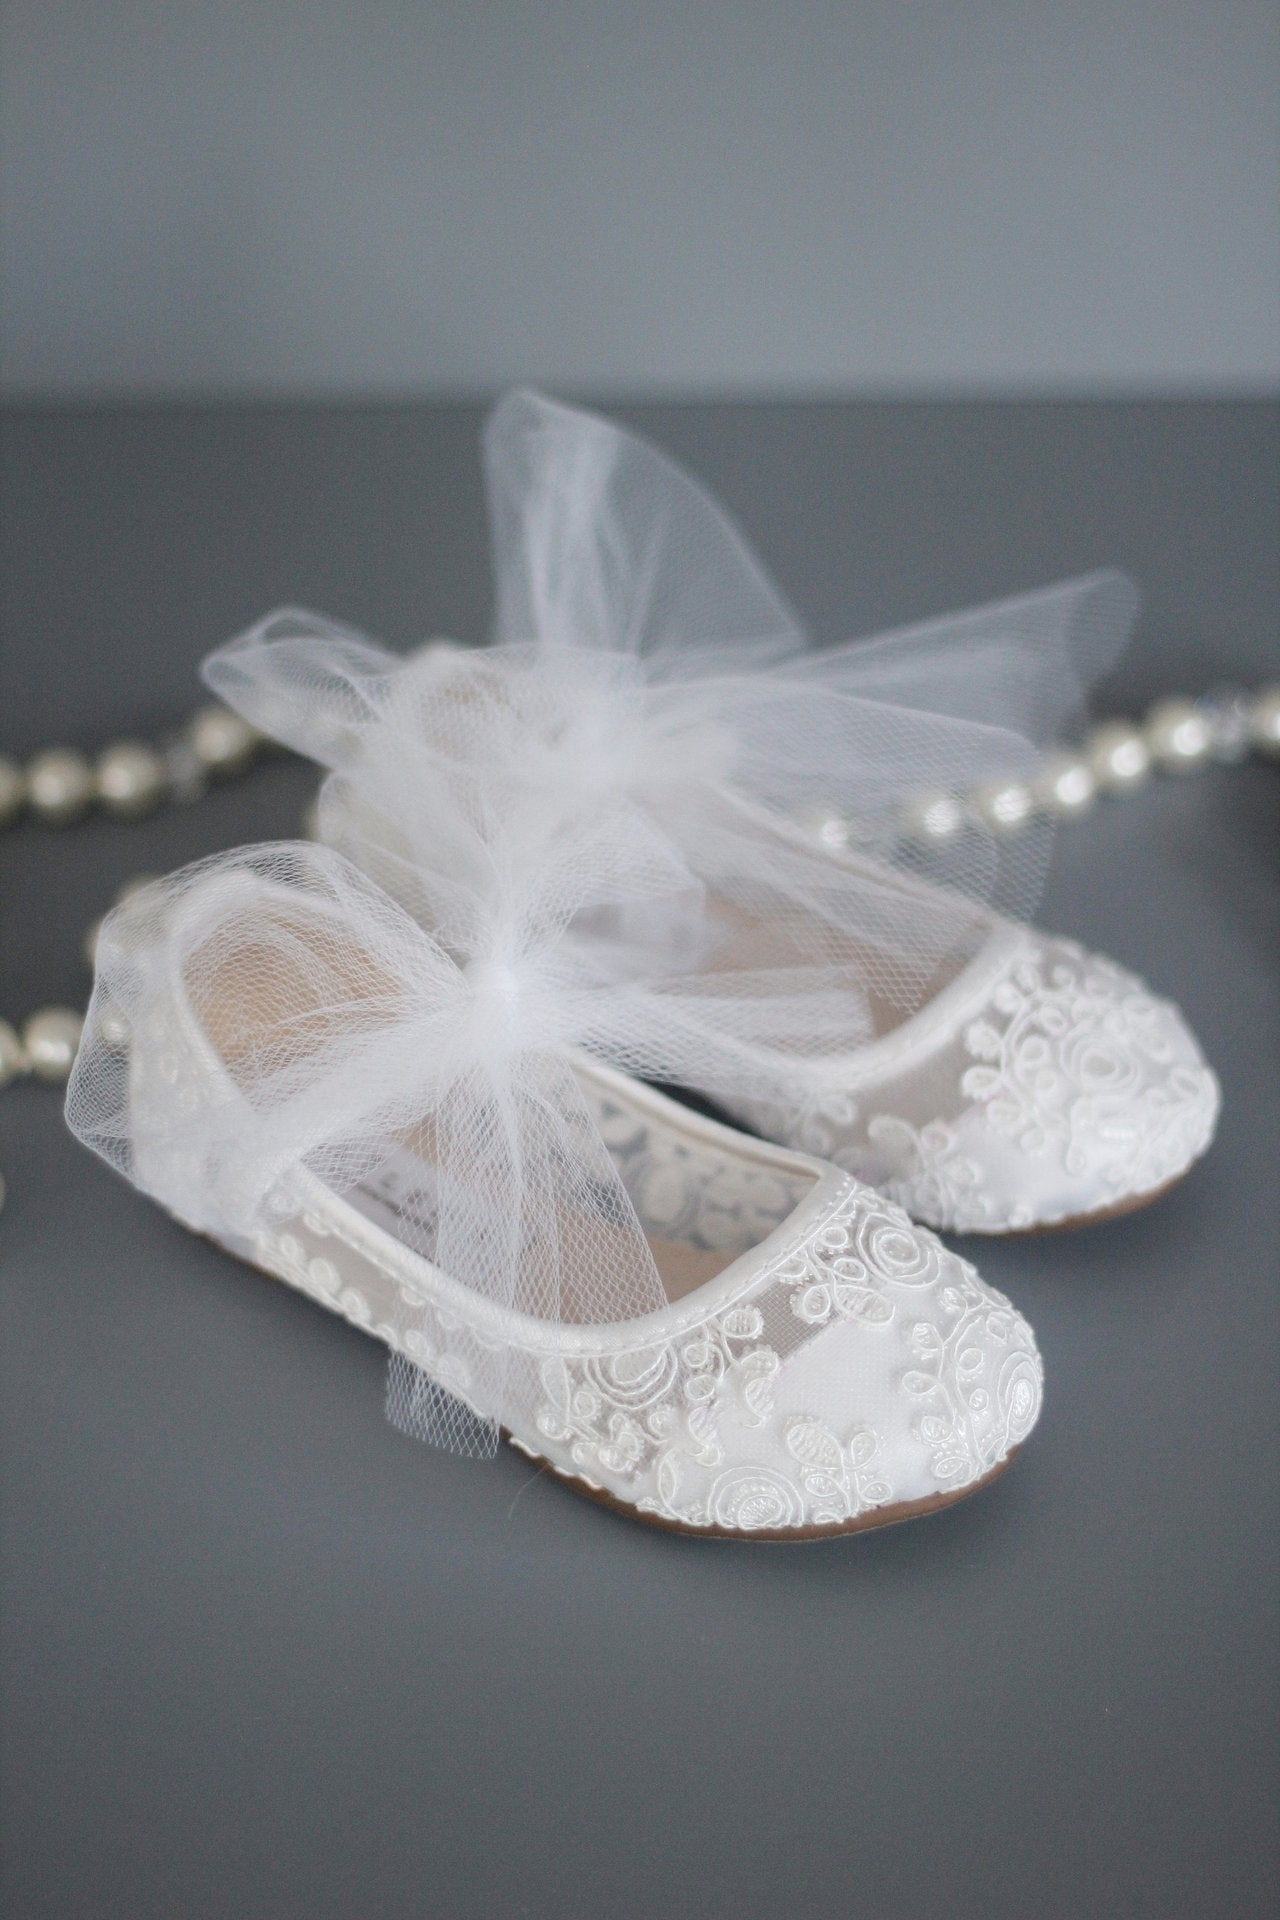 White Crochet Lace Shoes for girls - Flower Girls Shoes